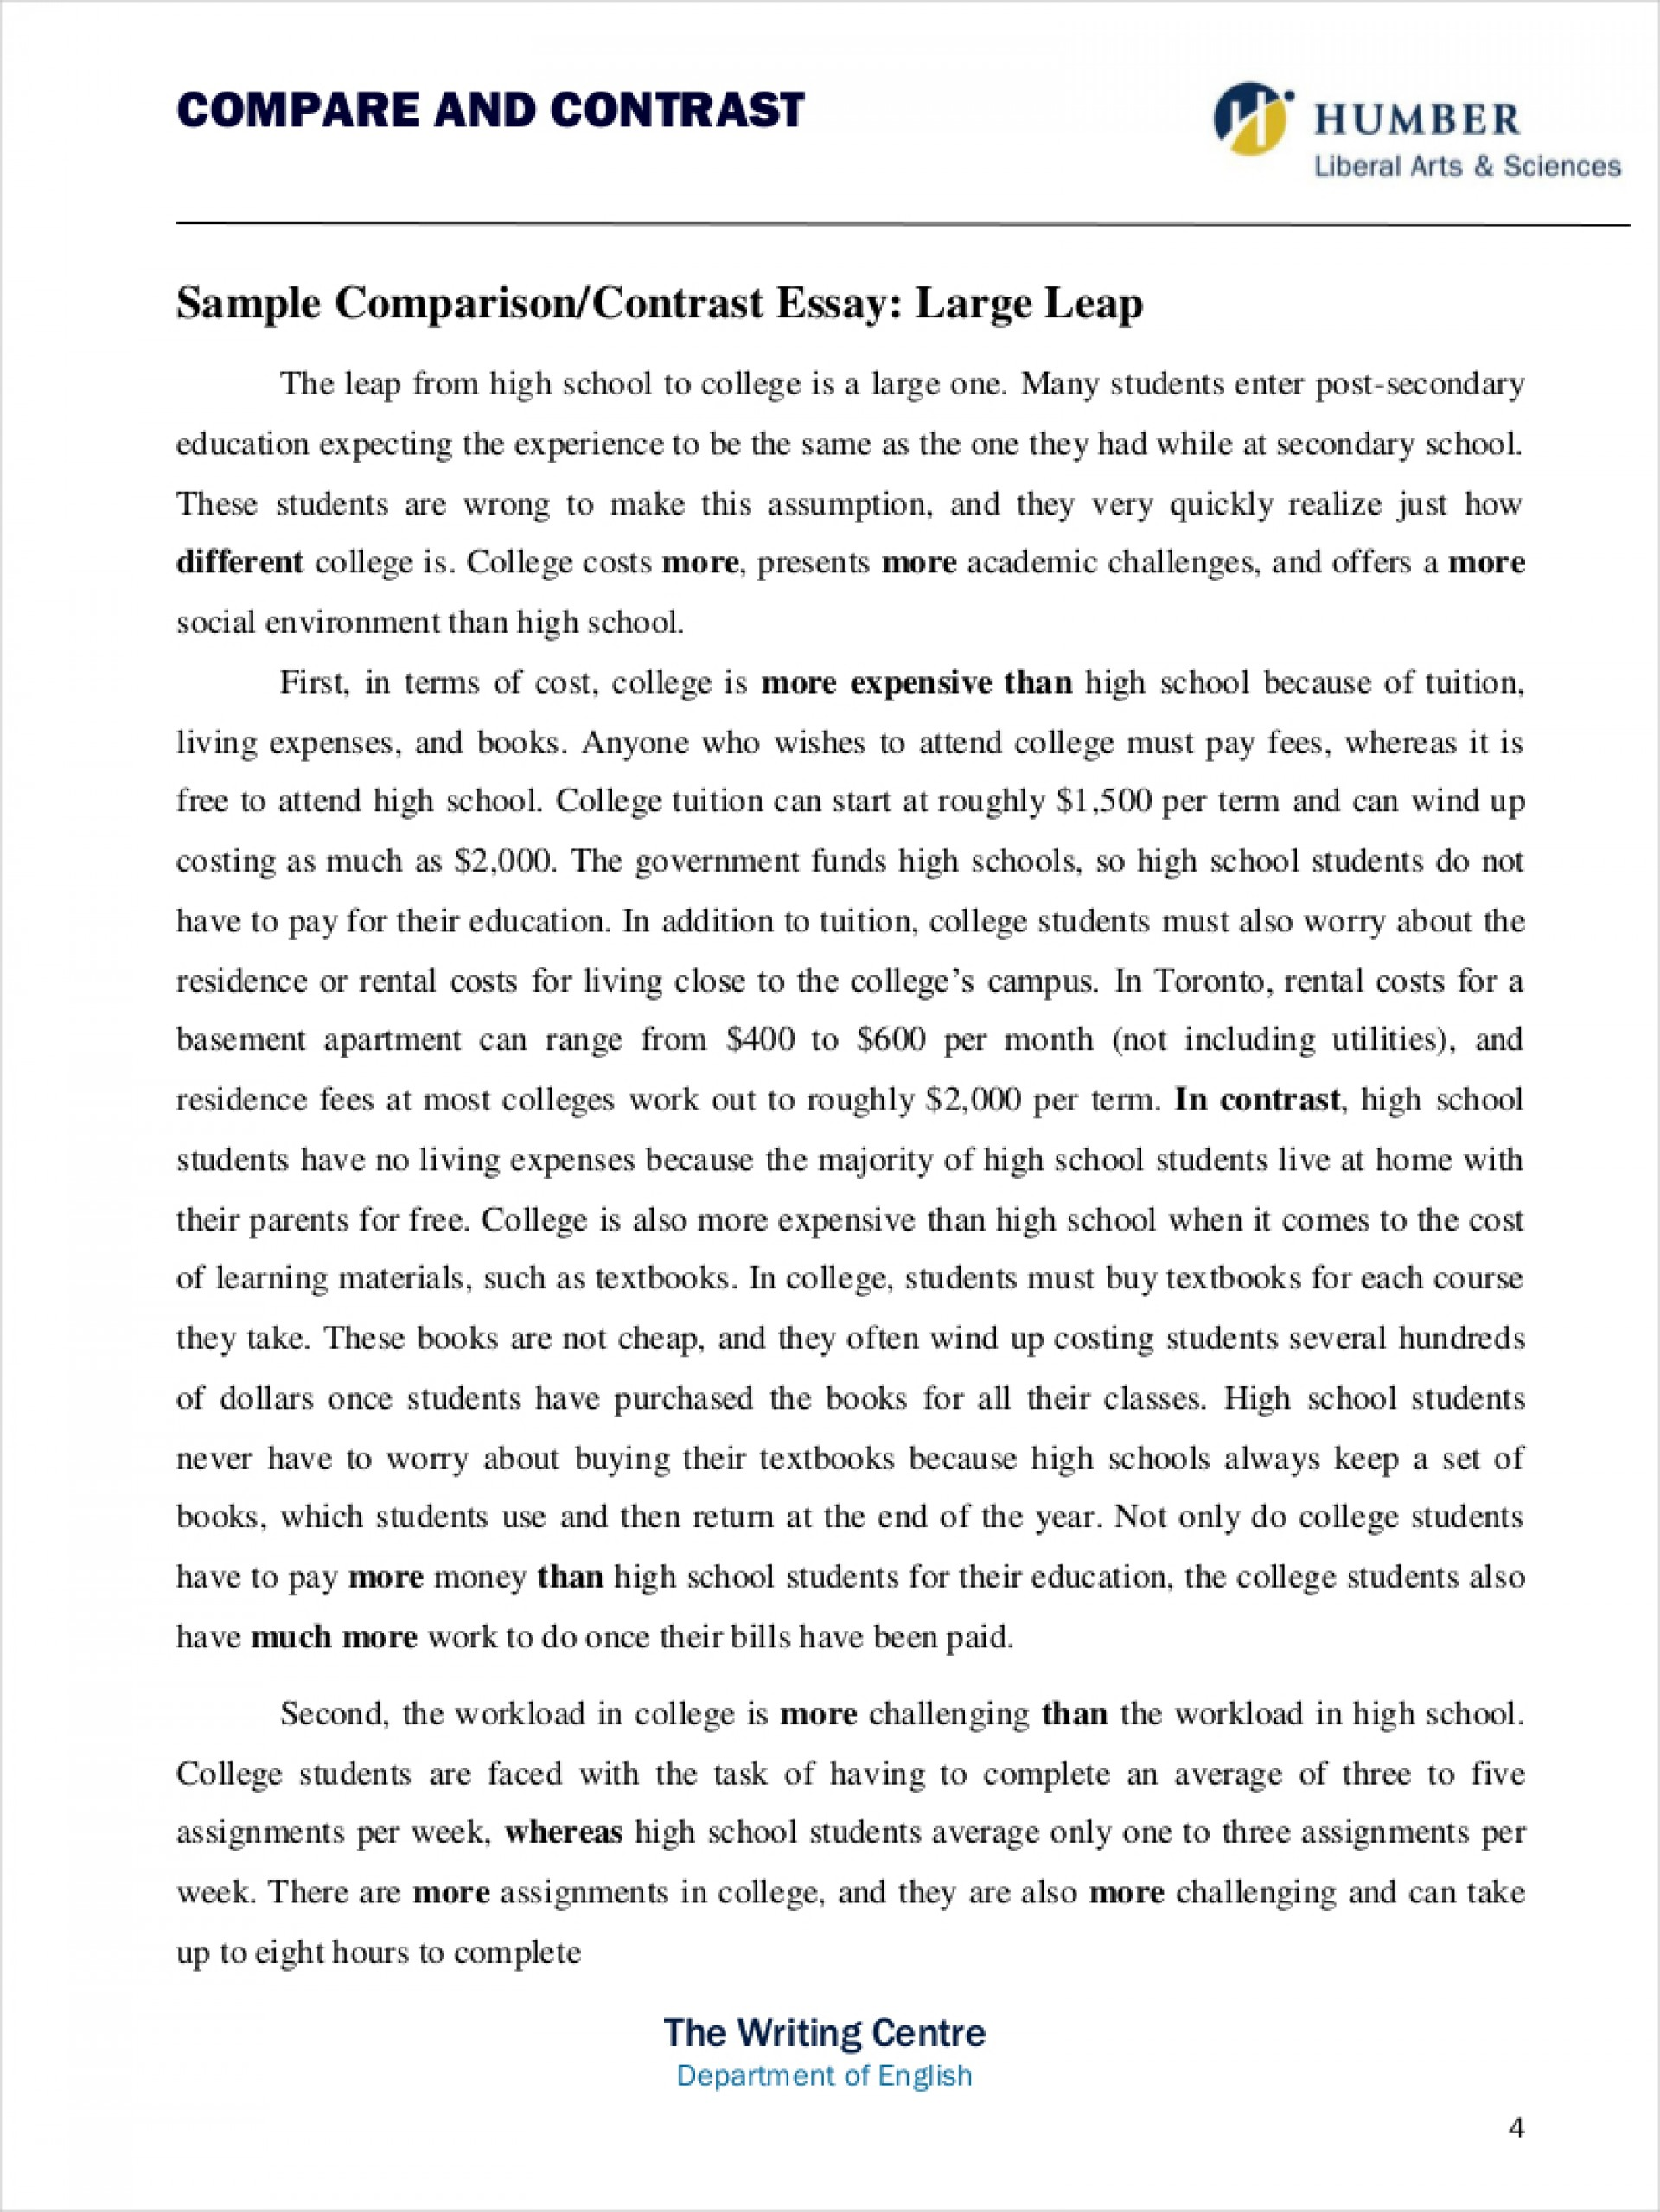 014 How To Write Compare And Contrast Essay Example Comparative Samples Free Pdf Format Download Throughout Examples Comparison Thesis Coles Thecolossus Co Within Ex Outstanding A On Two Poems An Introduction Conclusion For Middle School 1920